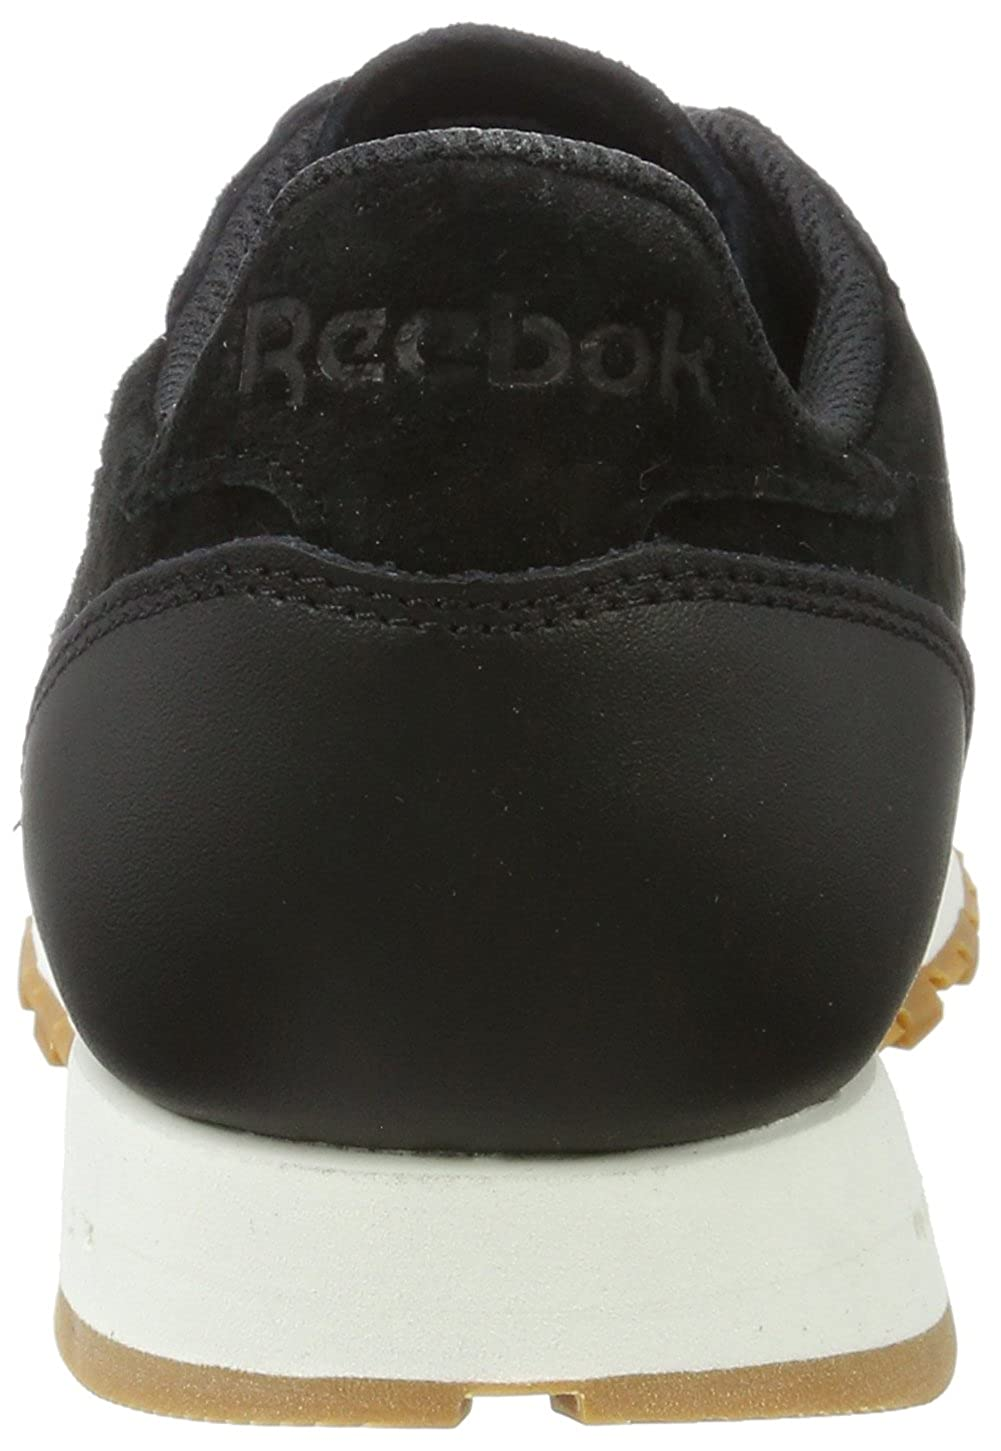 2ffe85b5616 Reebok Men s s Cl Leather Sg Fitness Shoes  Amazon.co.uk  Shoes   Bags